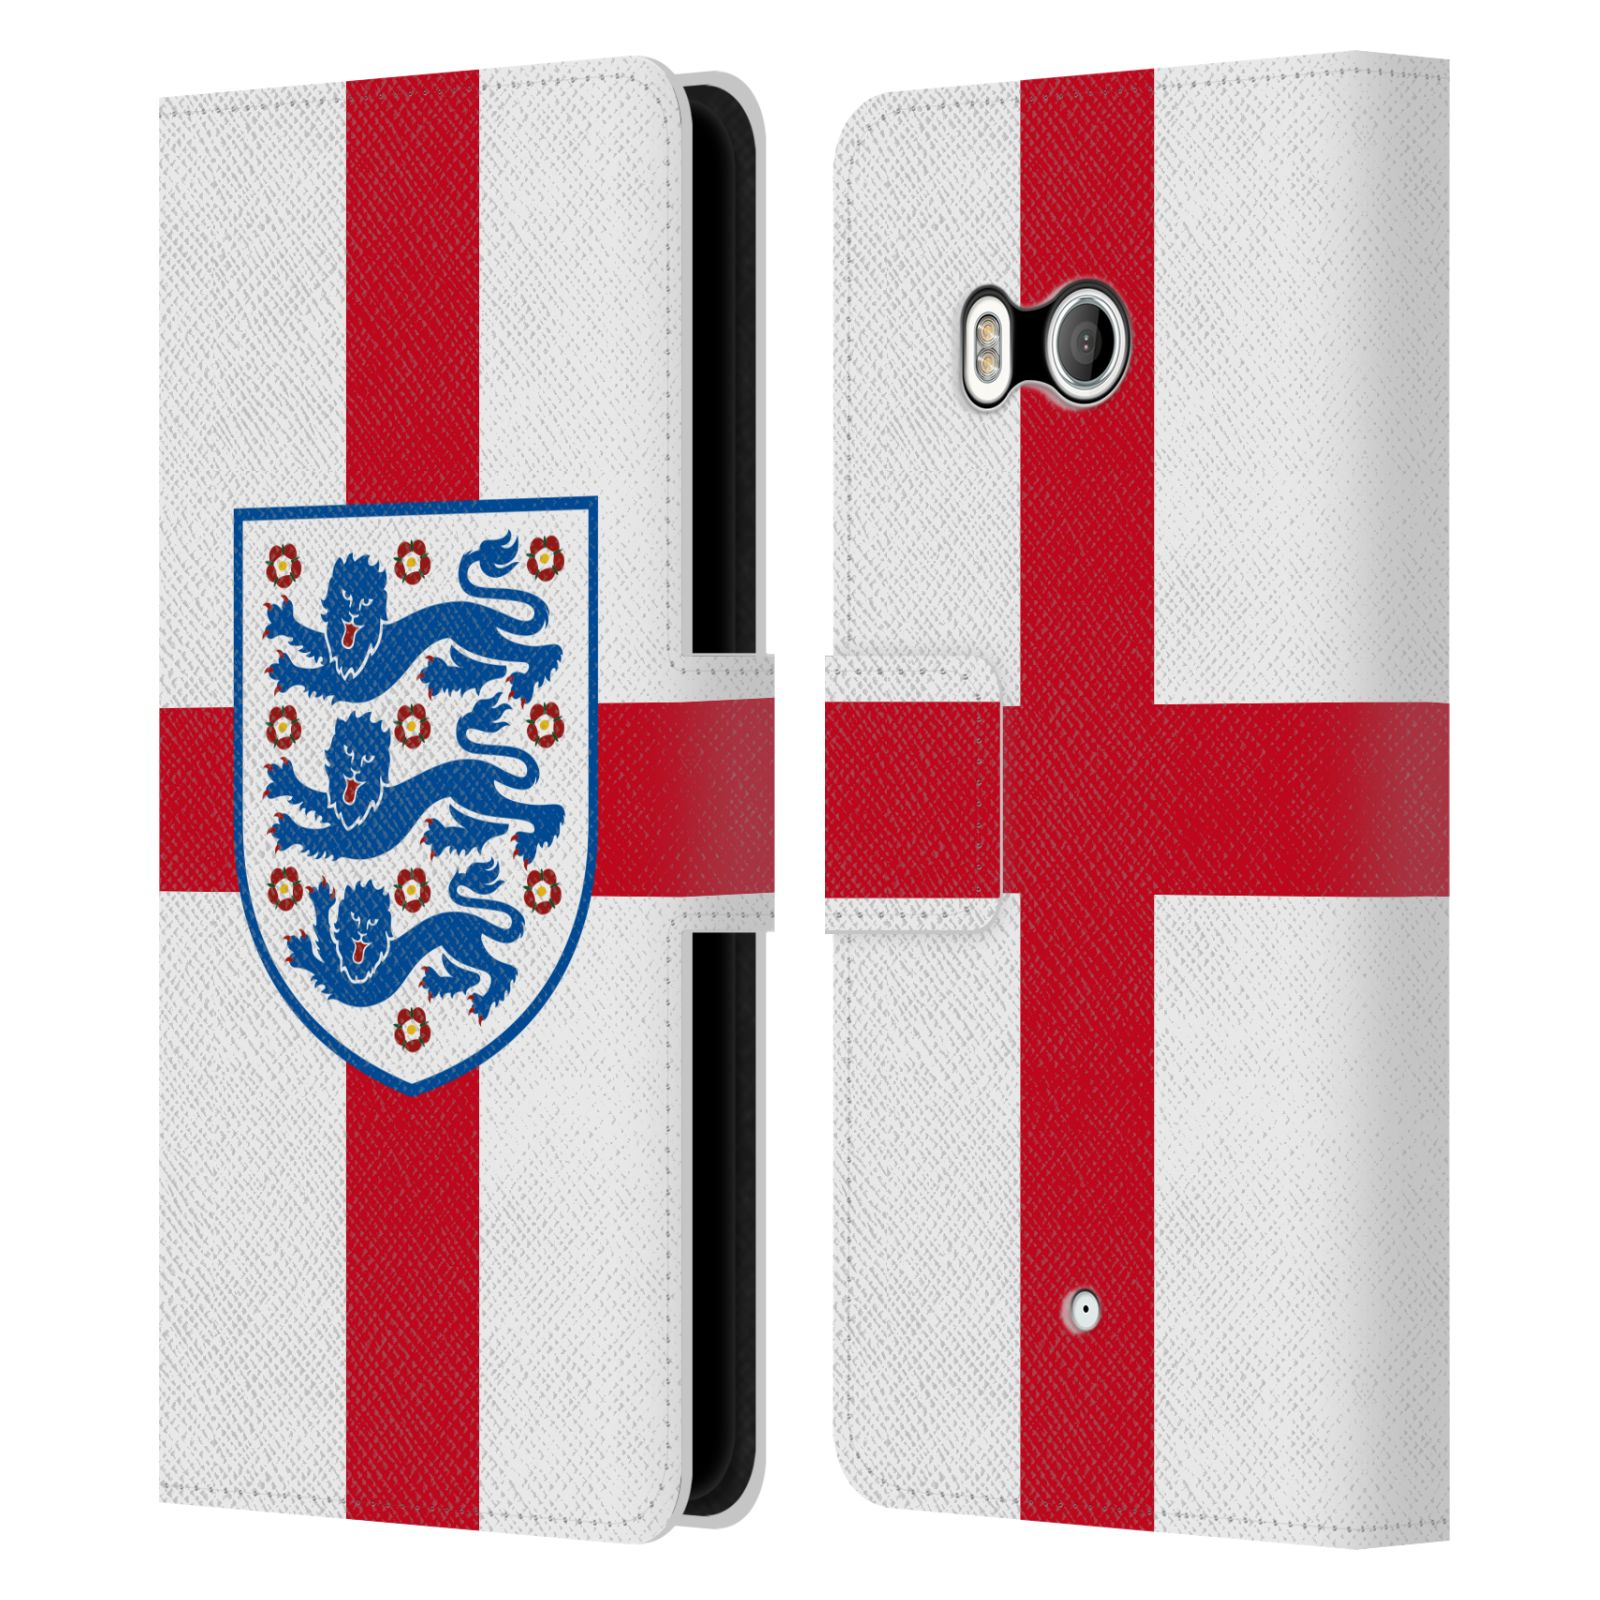 OFFICIAL-ENGLAND-FOOTBALL-TEAM-2018-CREST-LEATHER-BOOK-CASE-FOR-HTC-PHONES-1